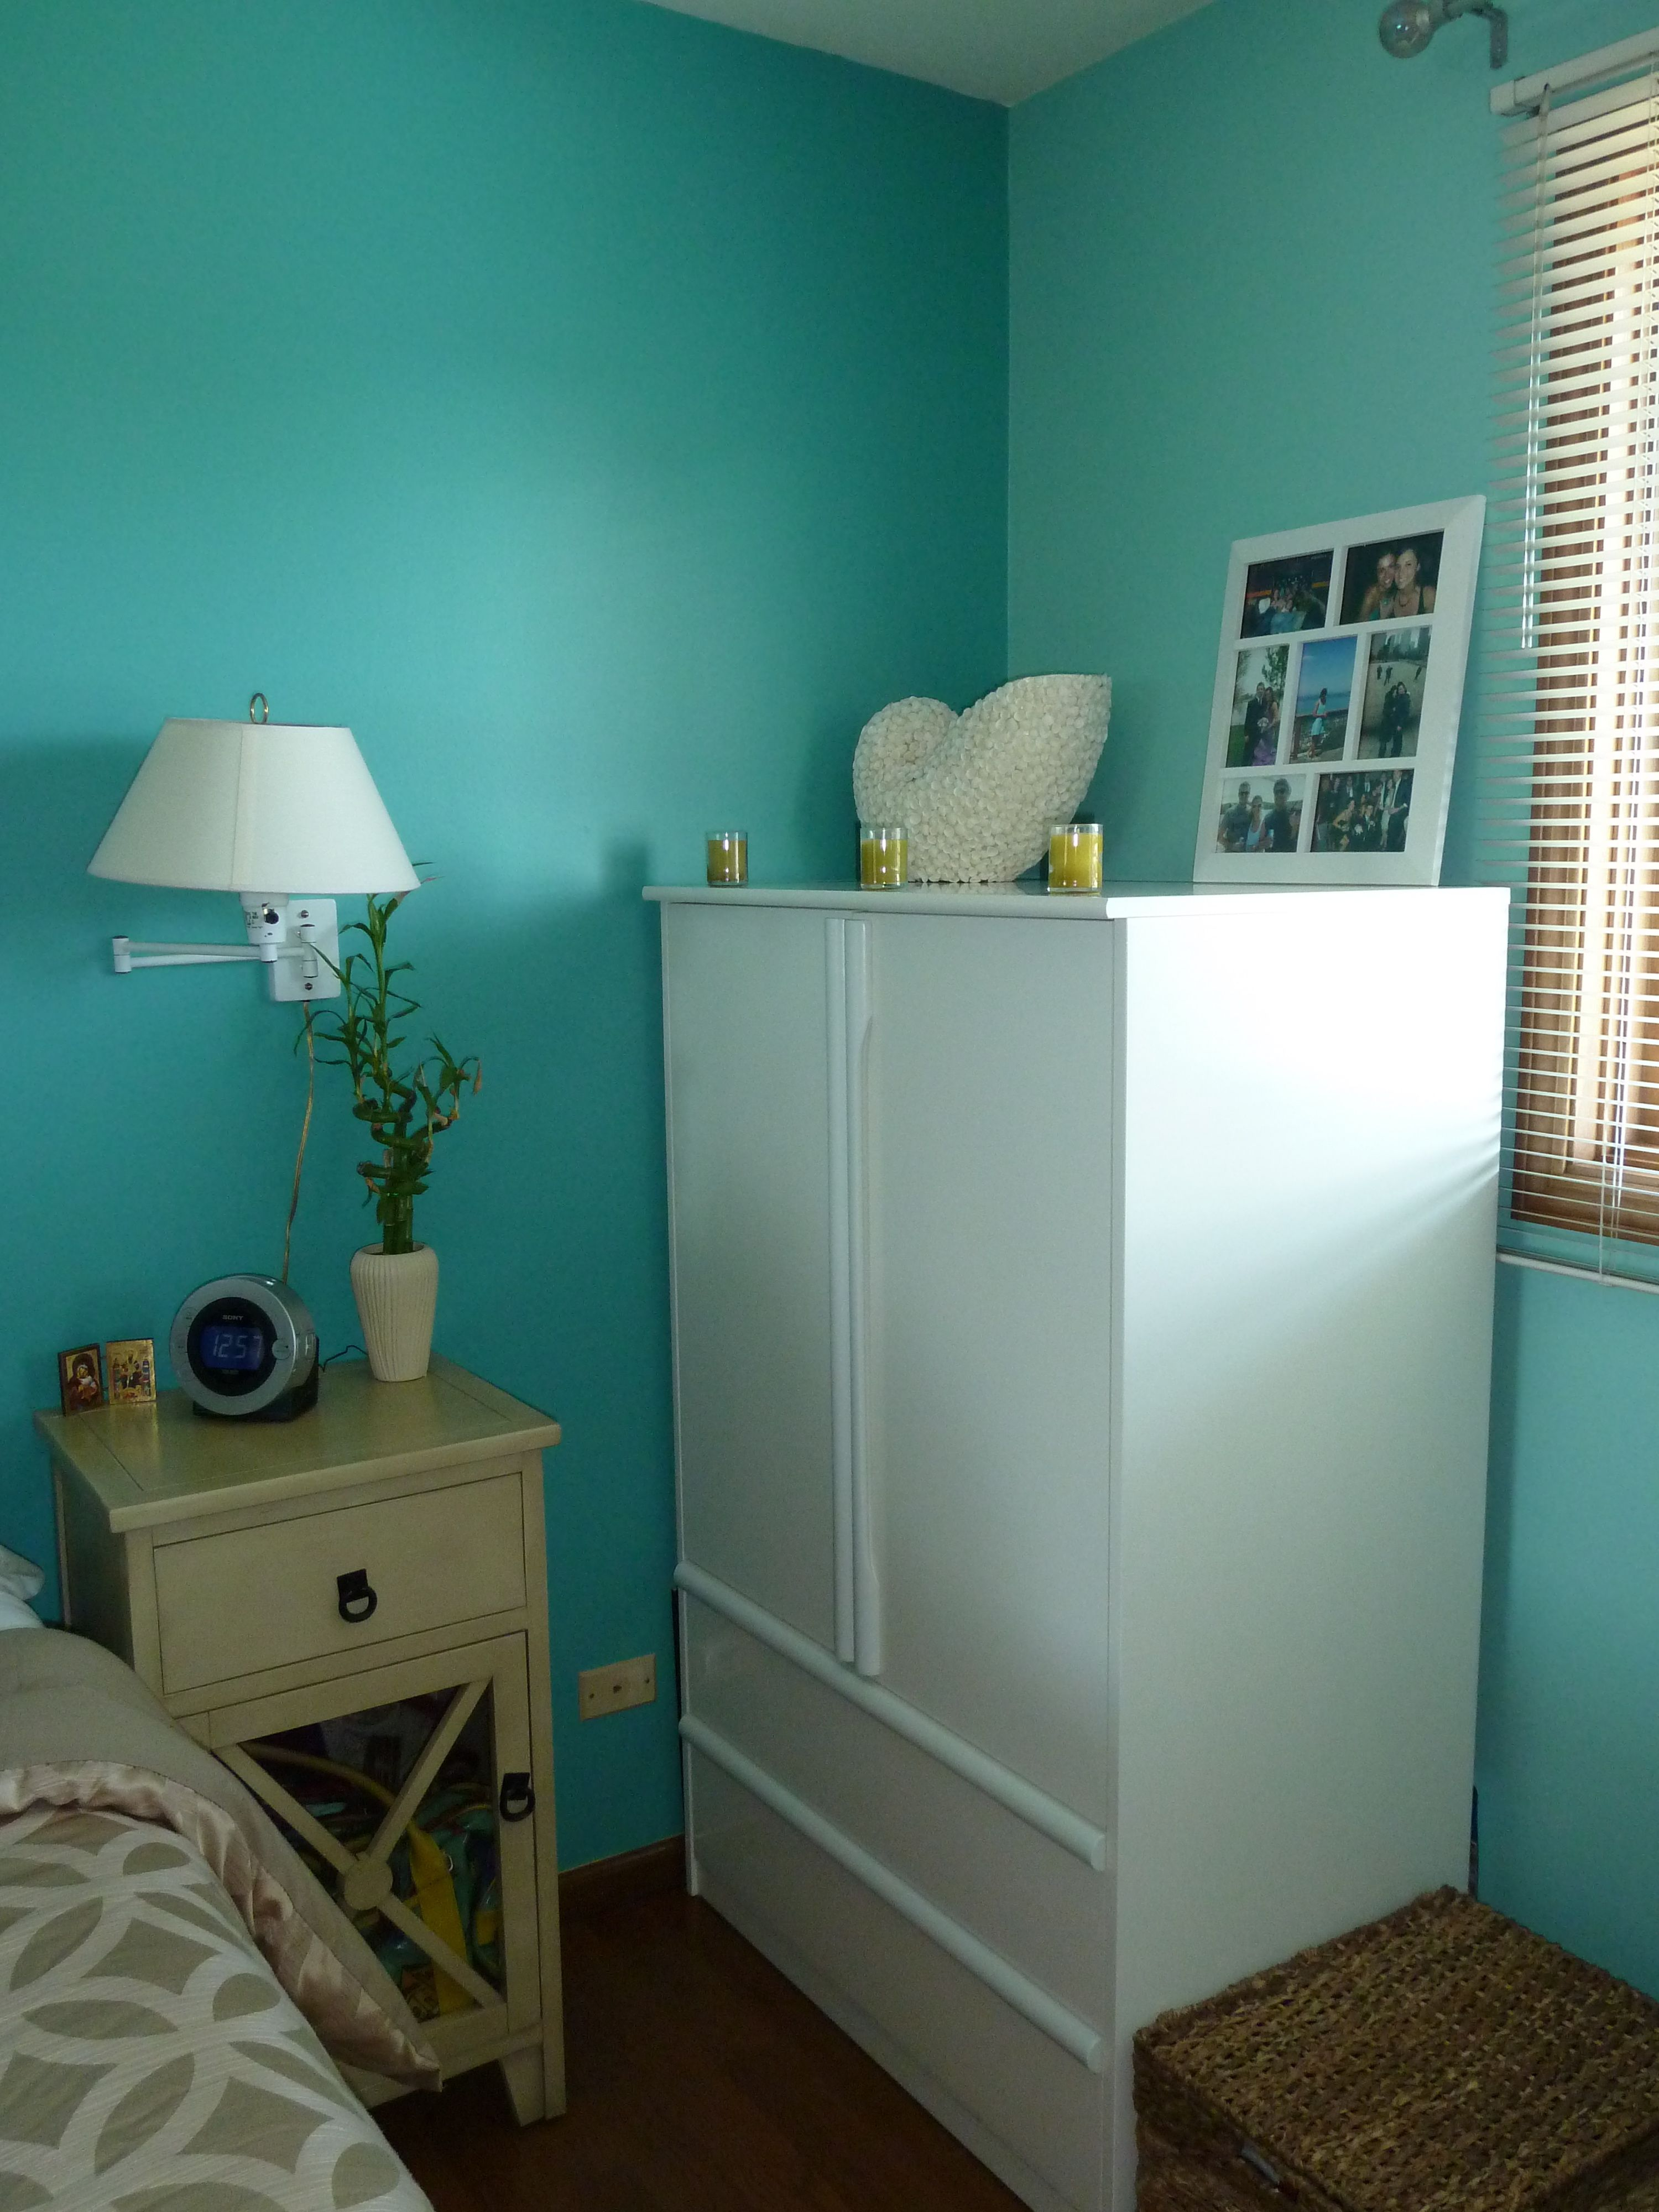 Wall color Behr Teal Zeal Jamaica Bay paint